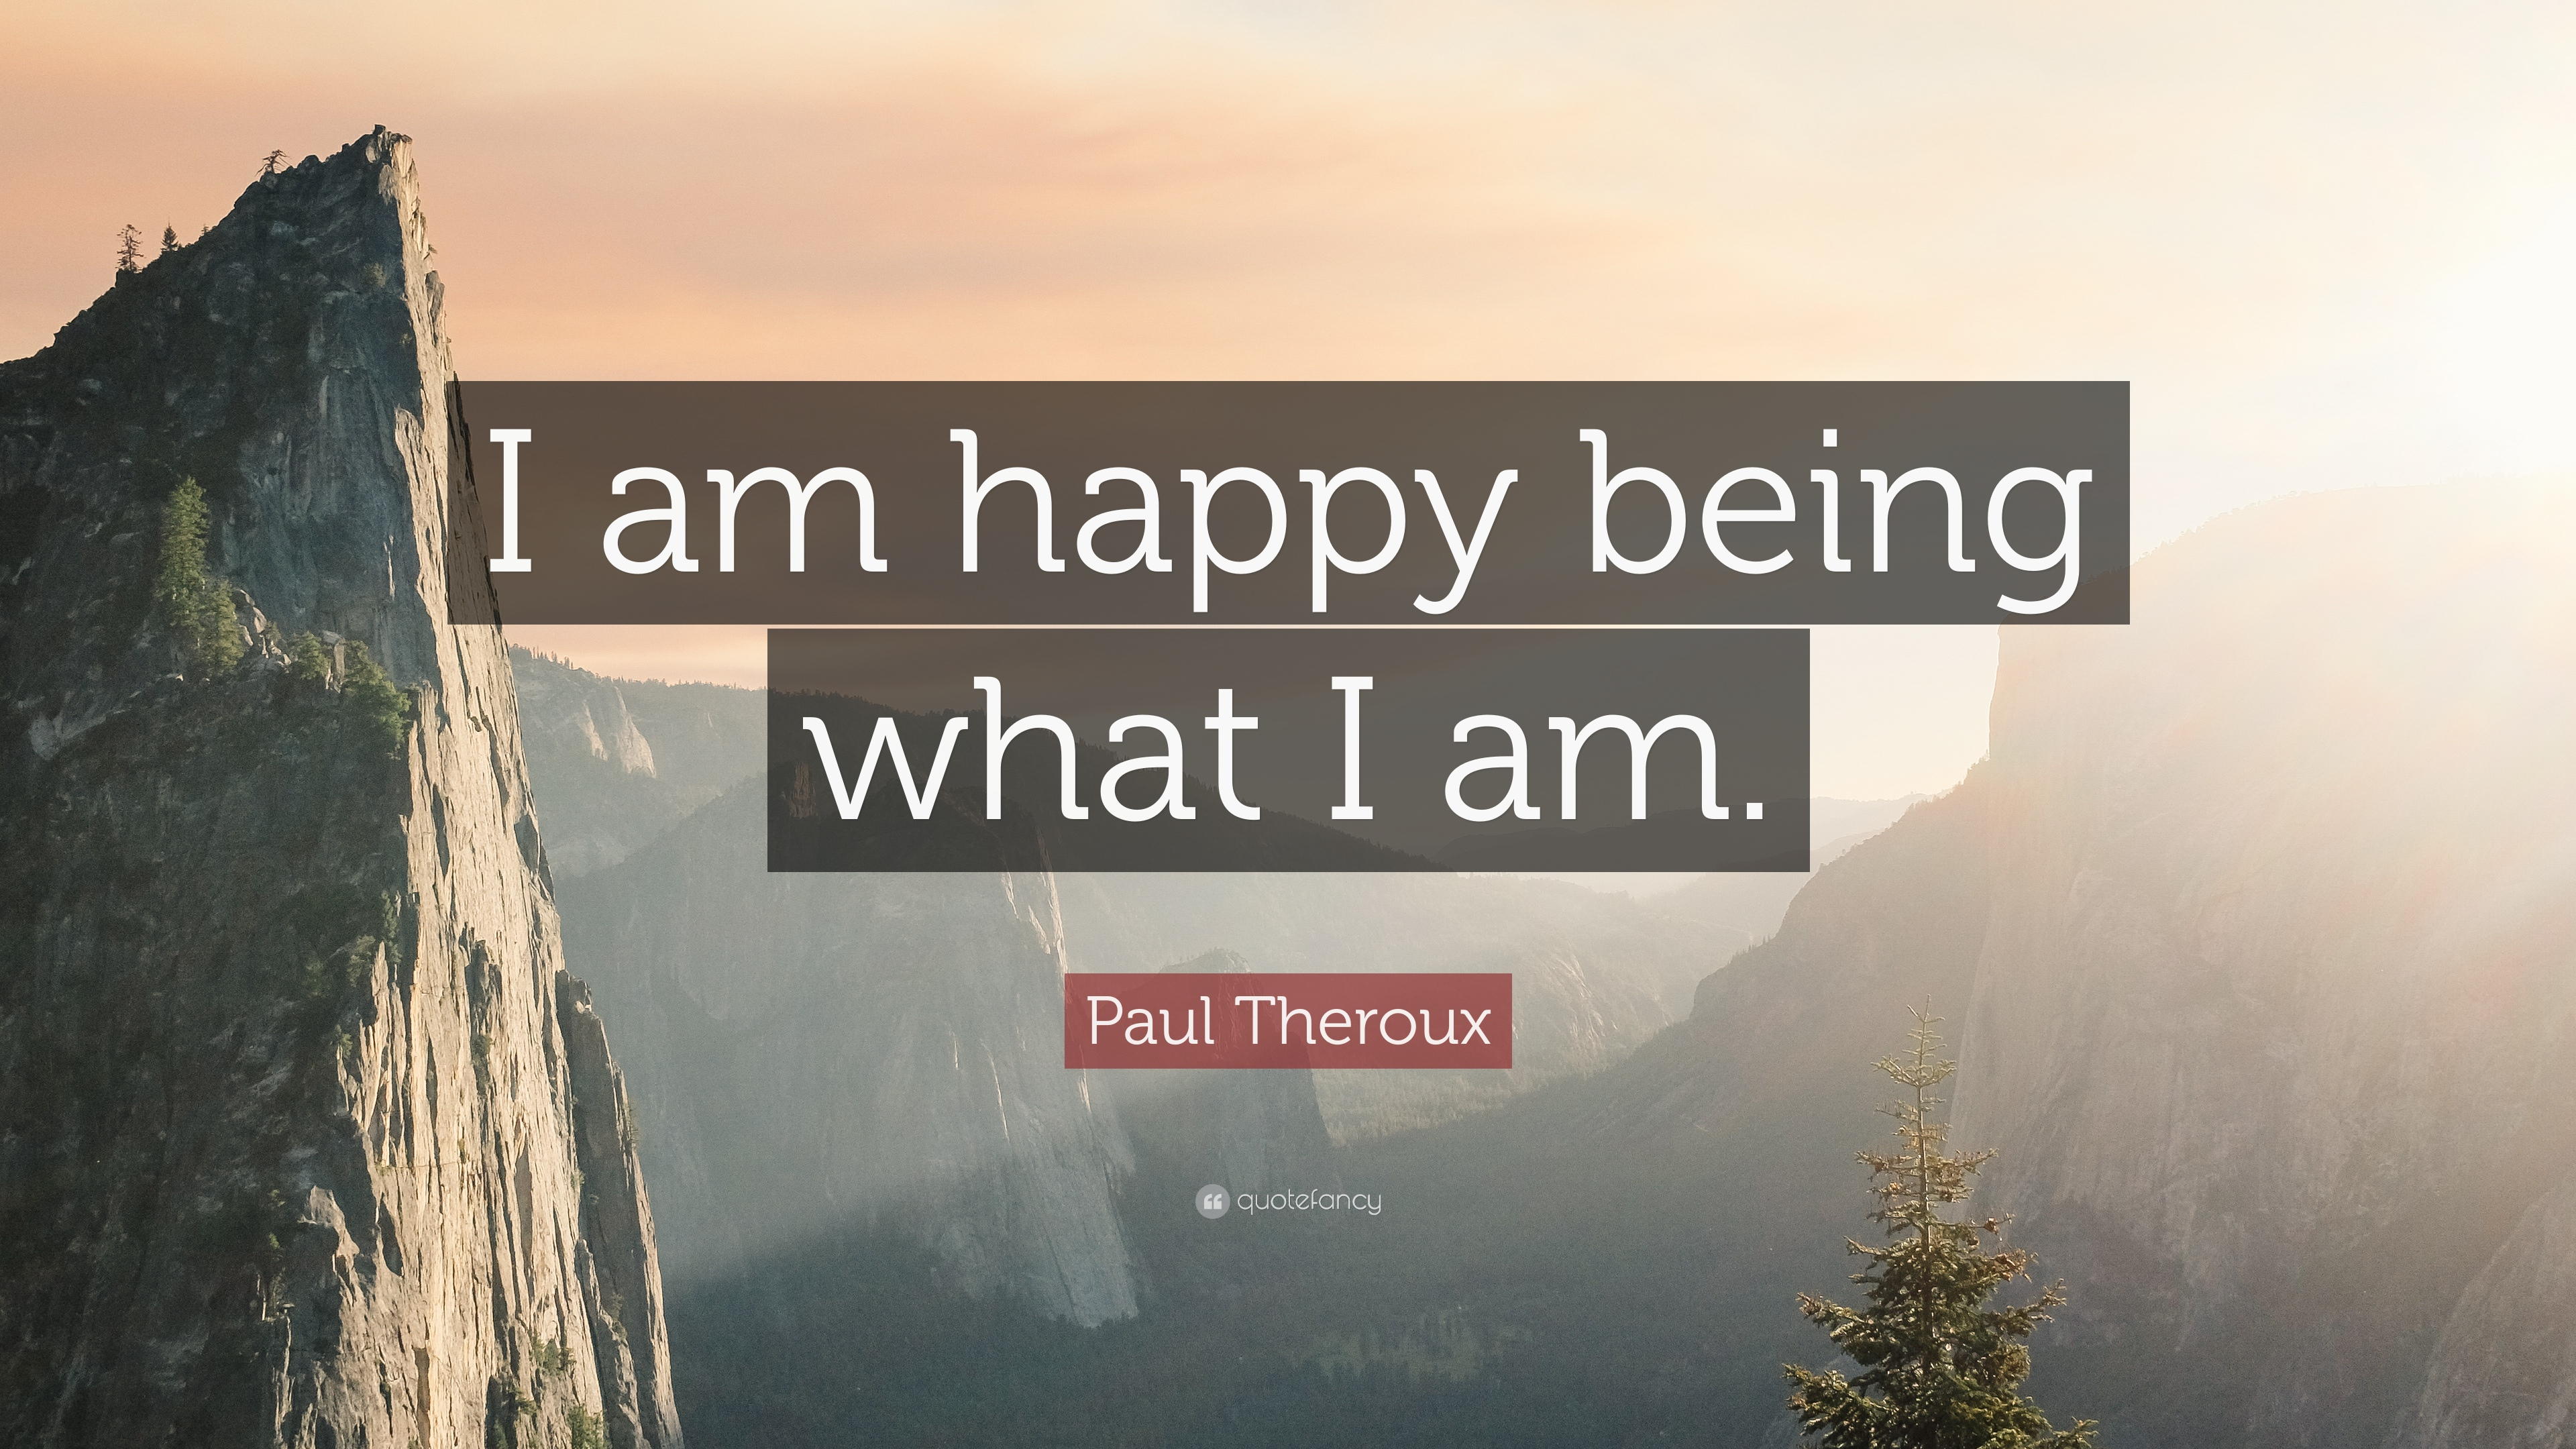 Paul Theroux Quote: I am happy being what I am.